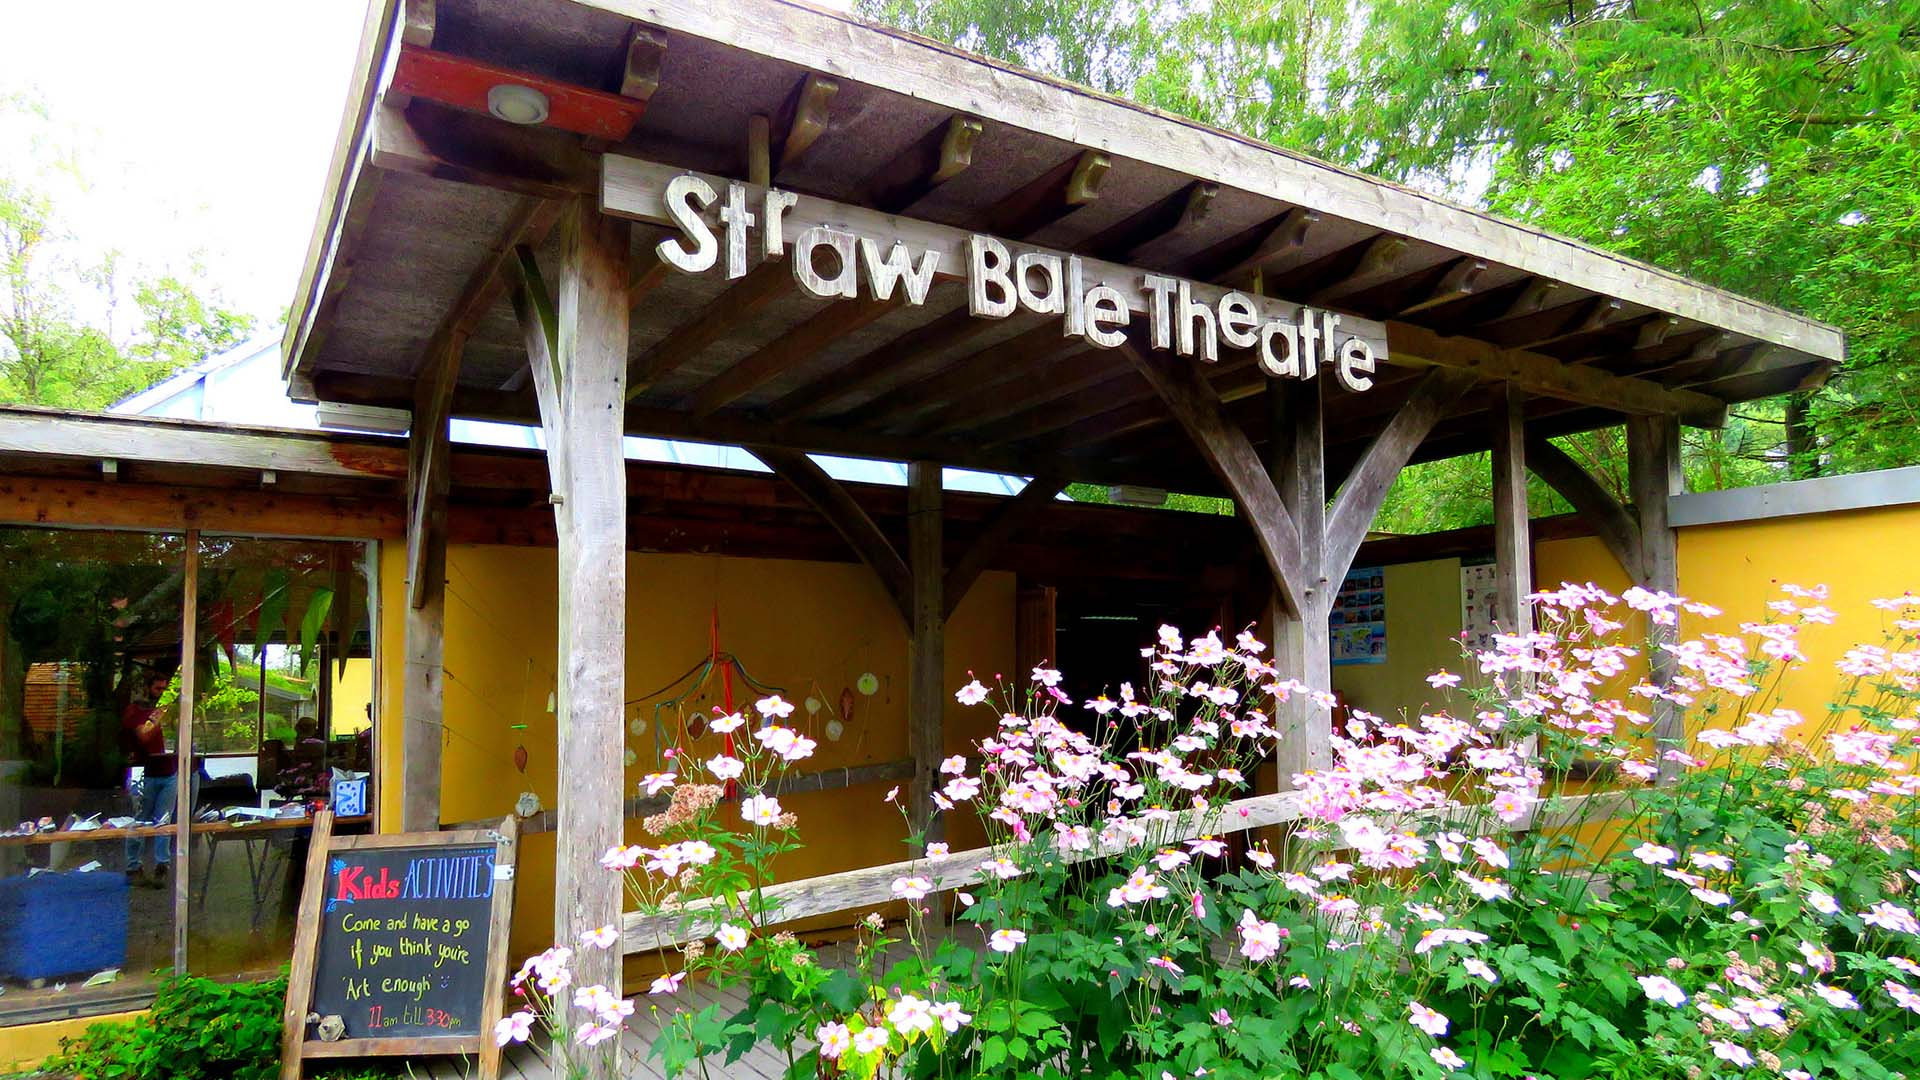 Strawbale Theatre at CAT